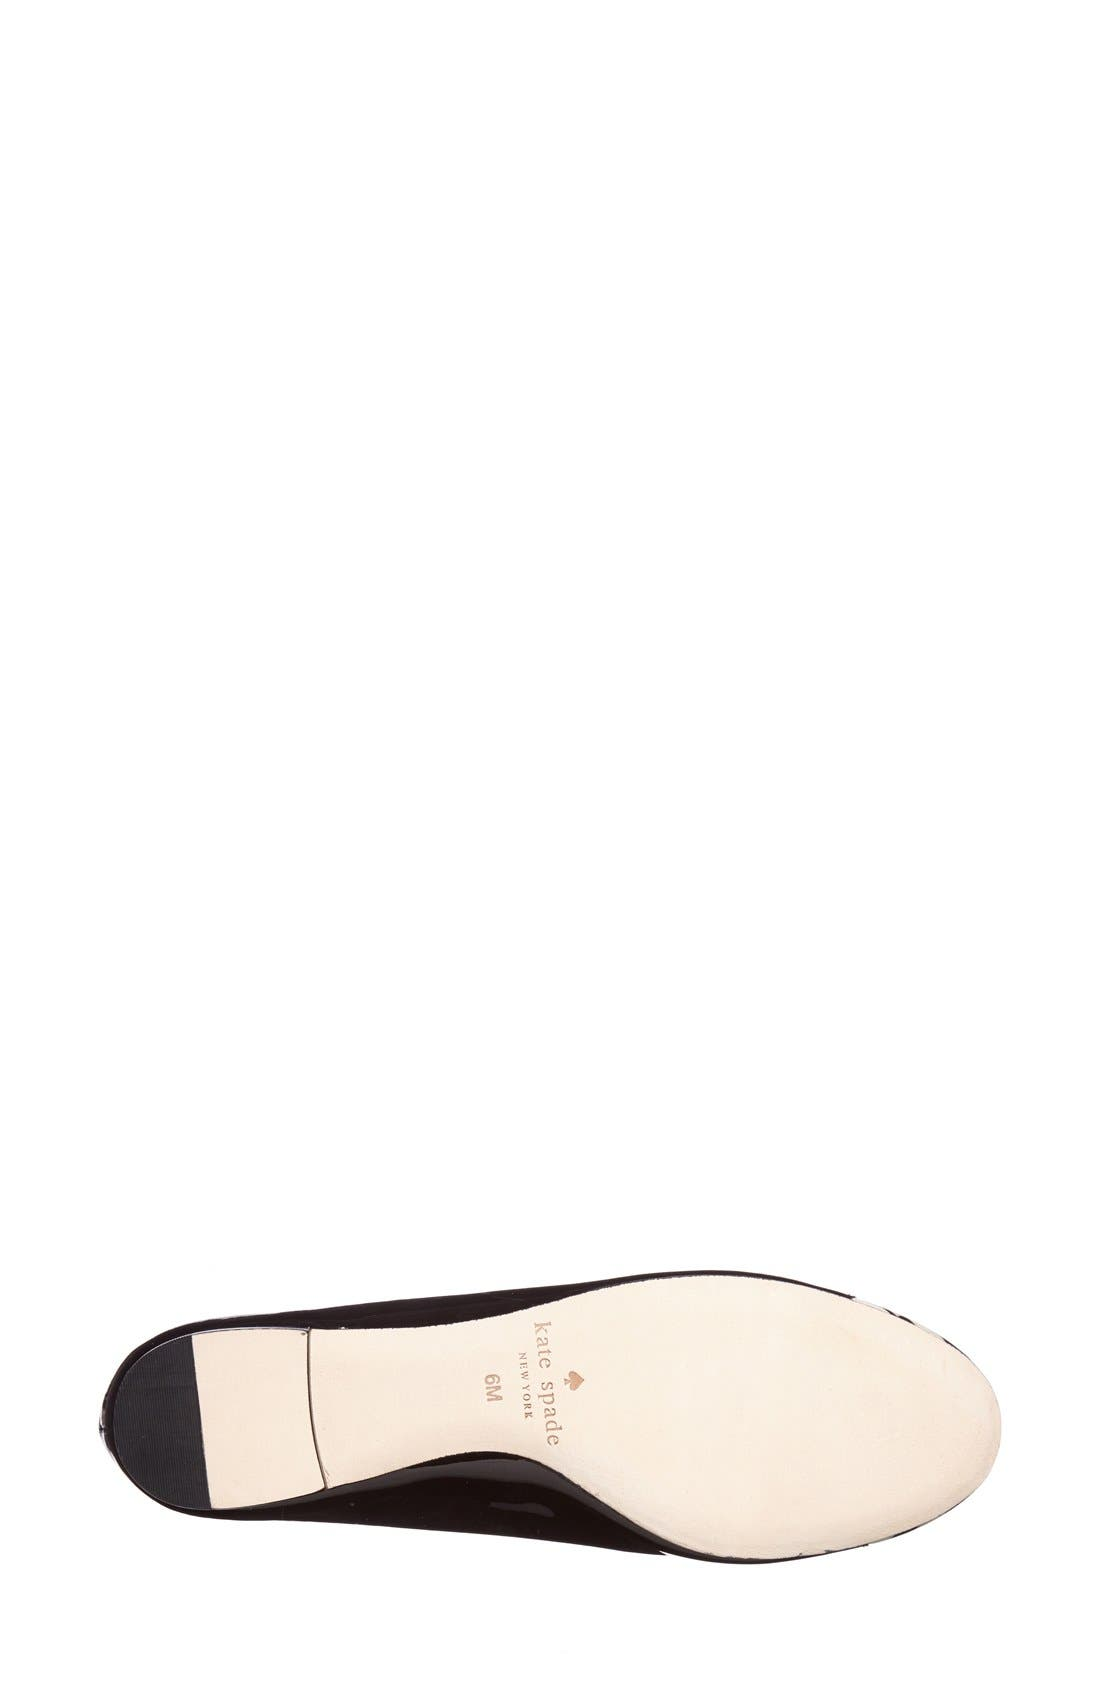 Alternate Image 4  - kate spade new york 'jazz' flat (Women)